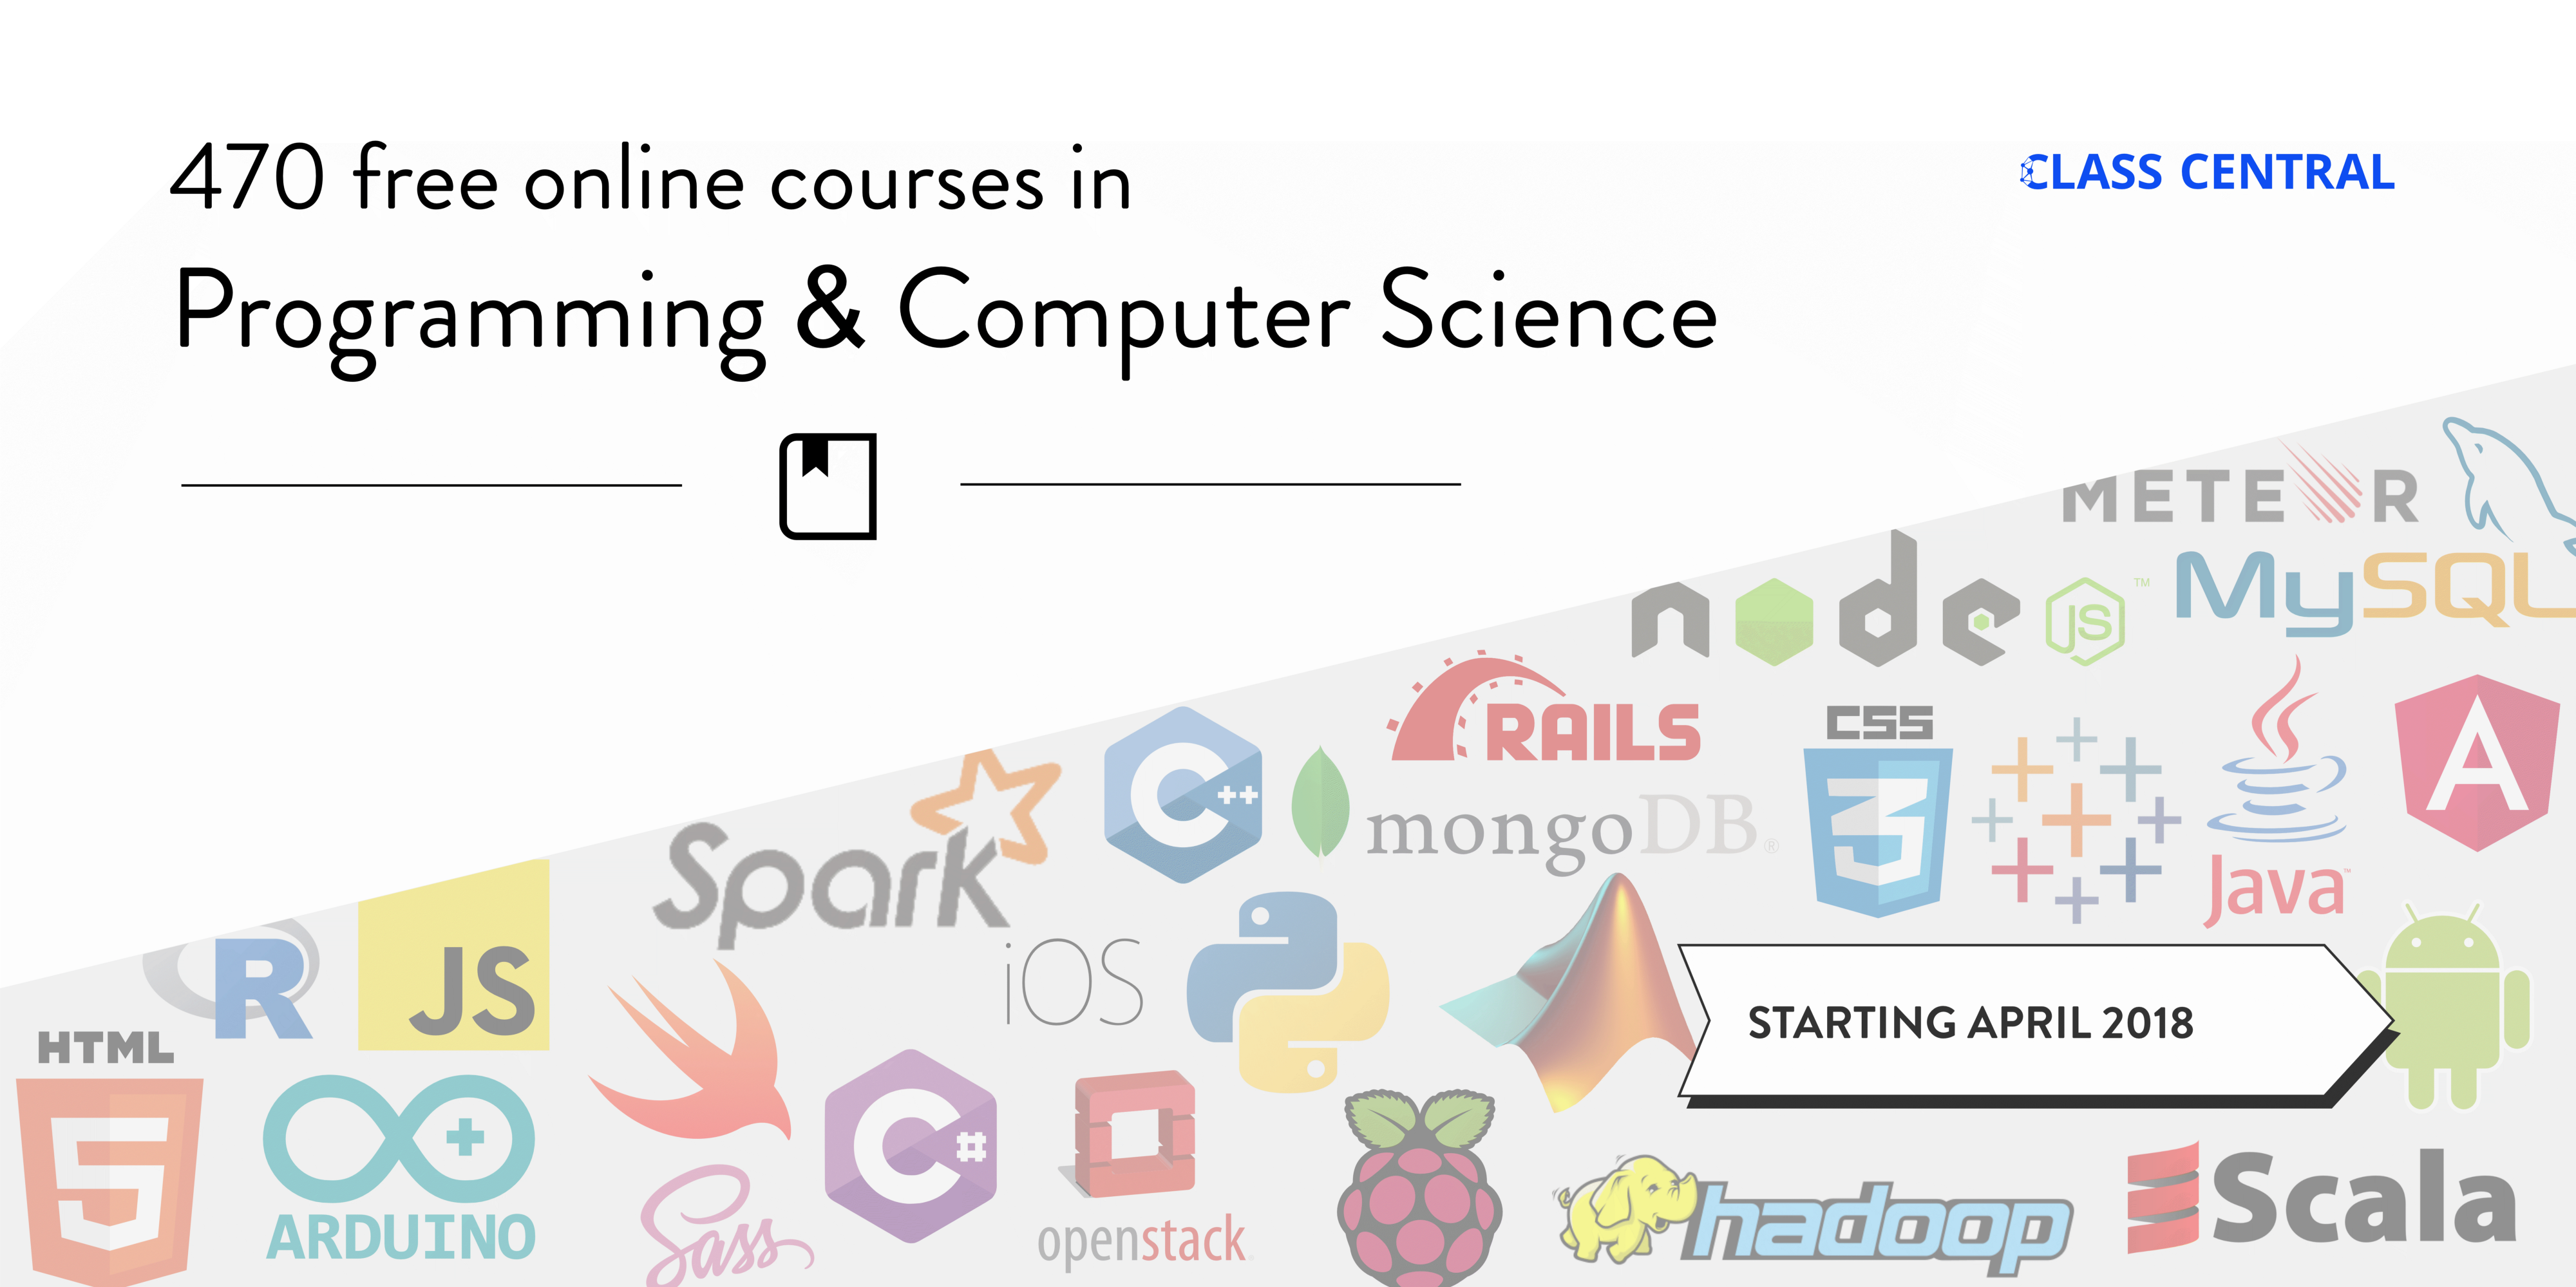 470 Free Online Programming Computer Science Courses You Can Start In April By Dhawal Shah Freecodecamp Org Medium